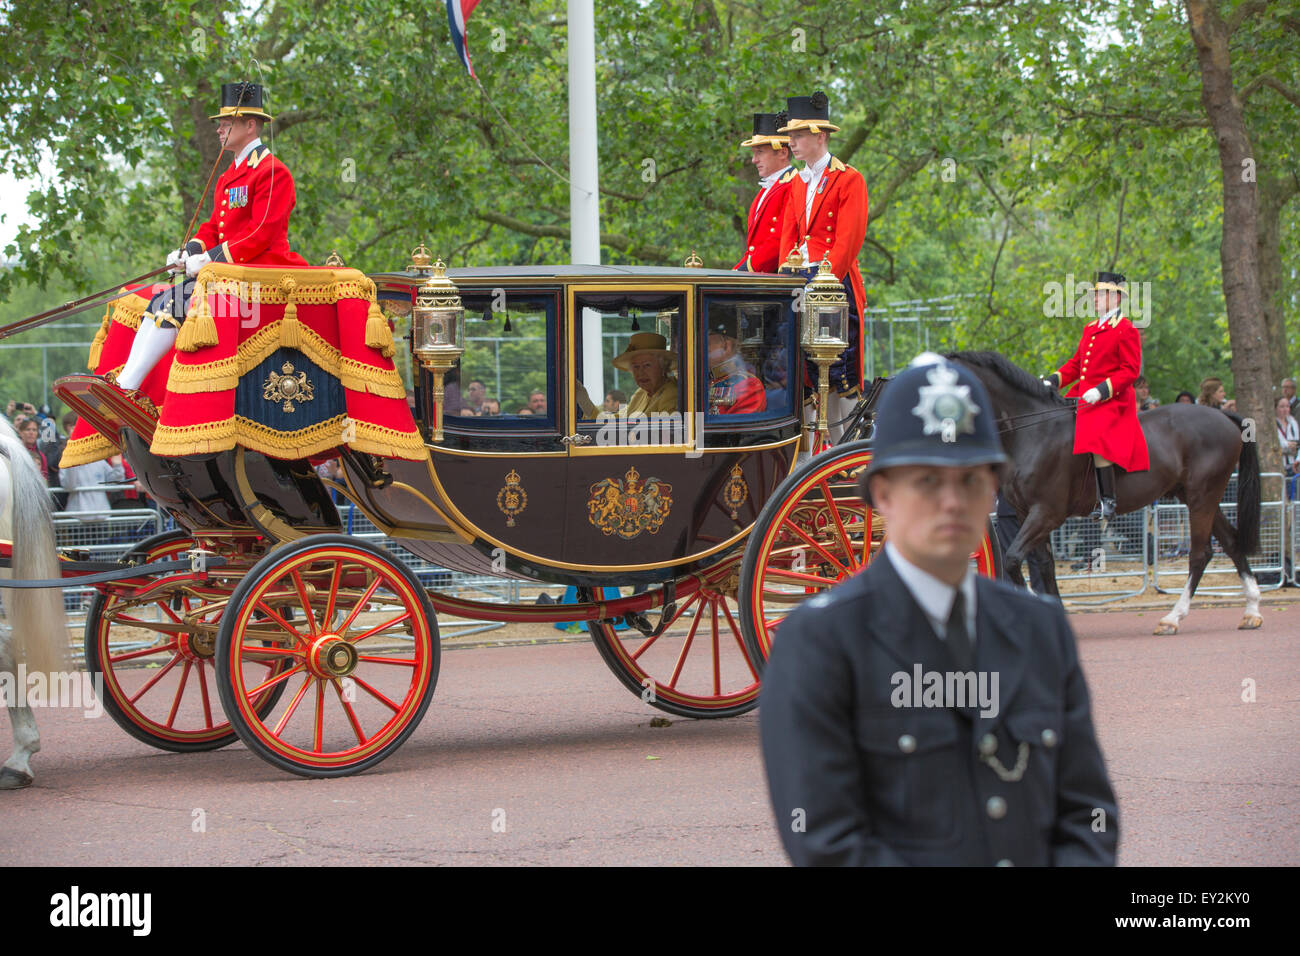 Queen Elizabeth II and Prince Phillip in the royal carriage on the Mall en route to the Trooping the Colours ceremony. - Stock Image